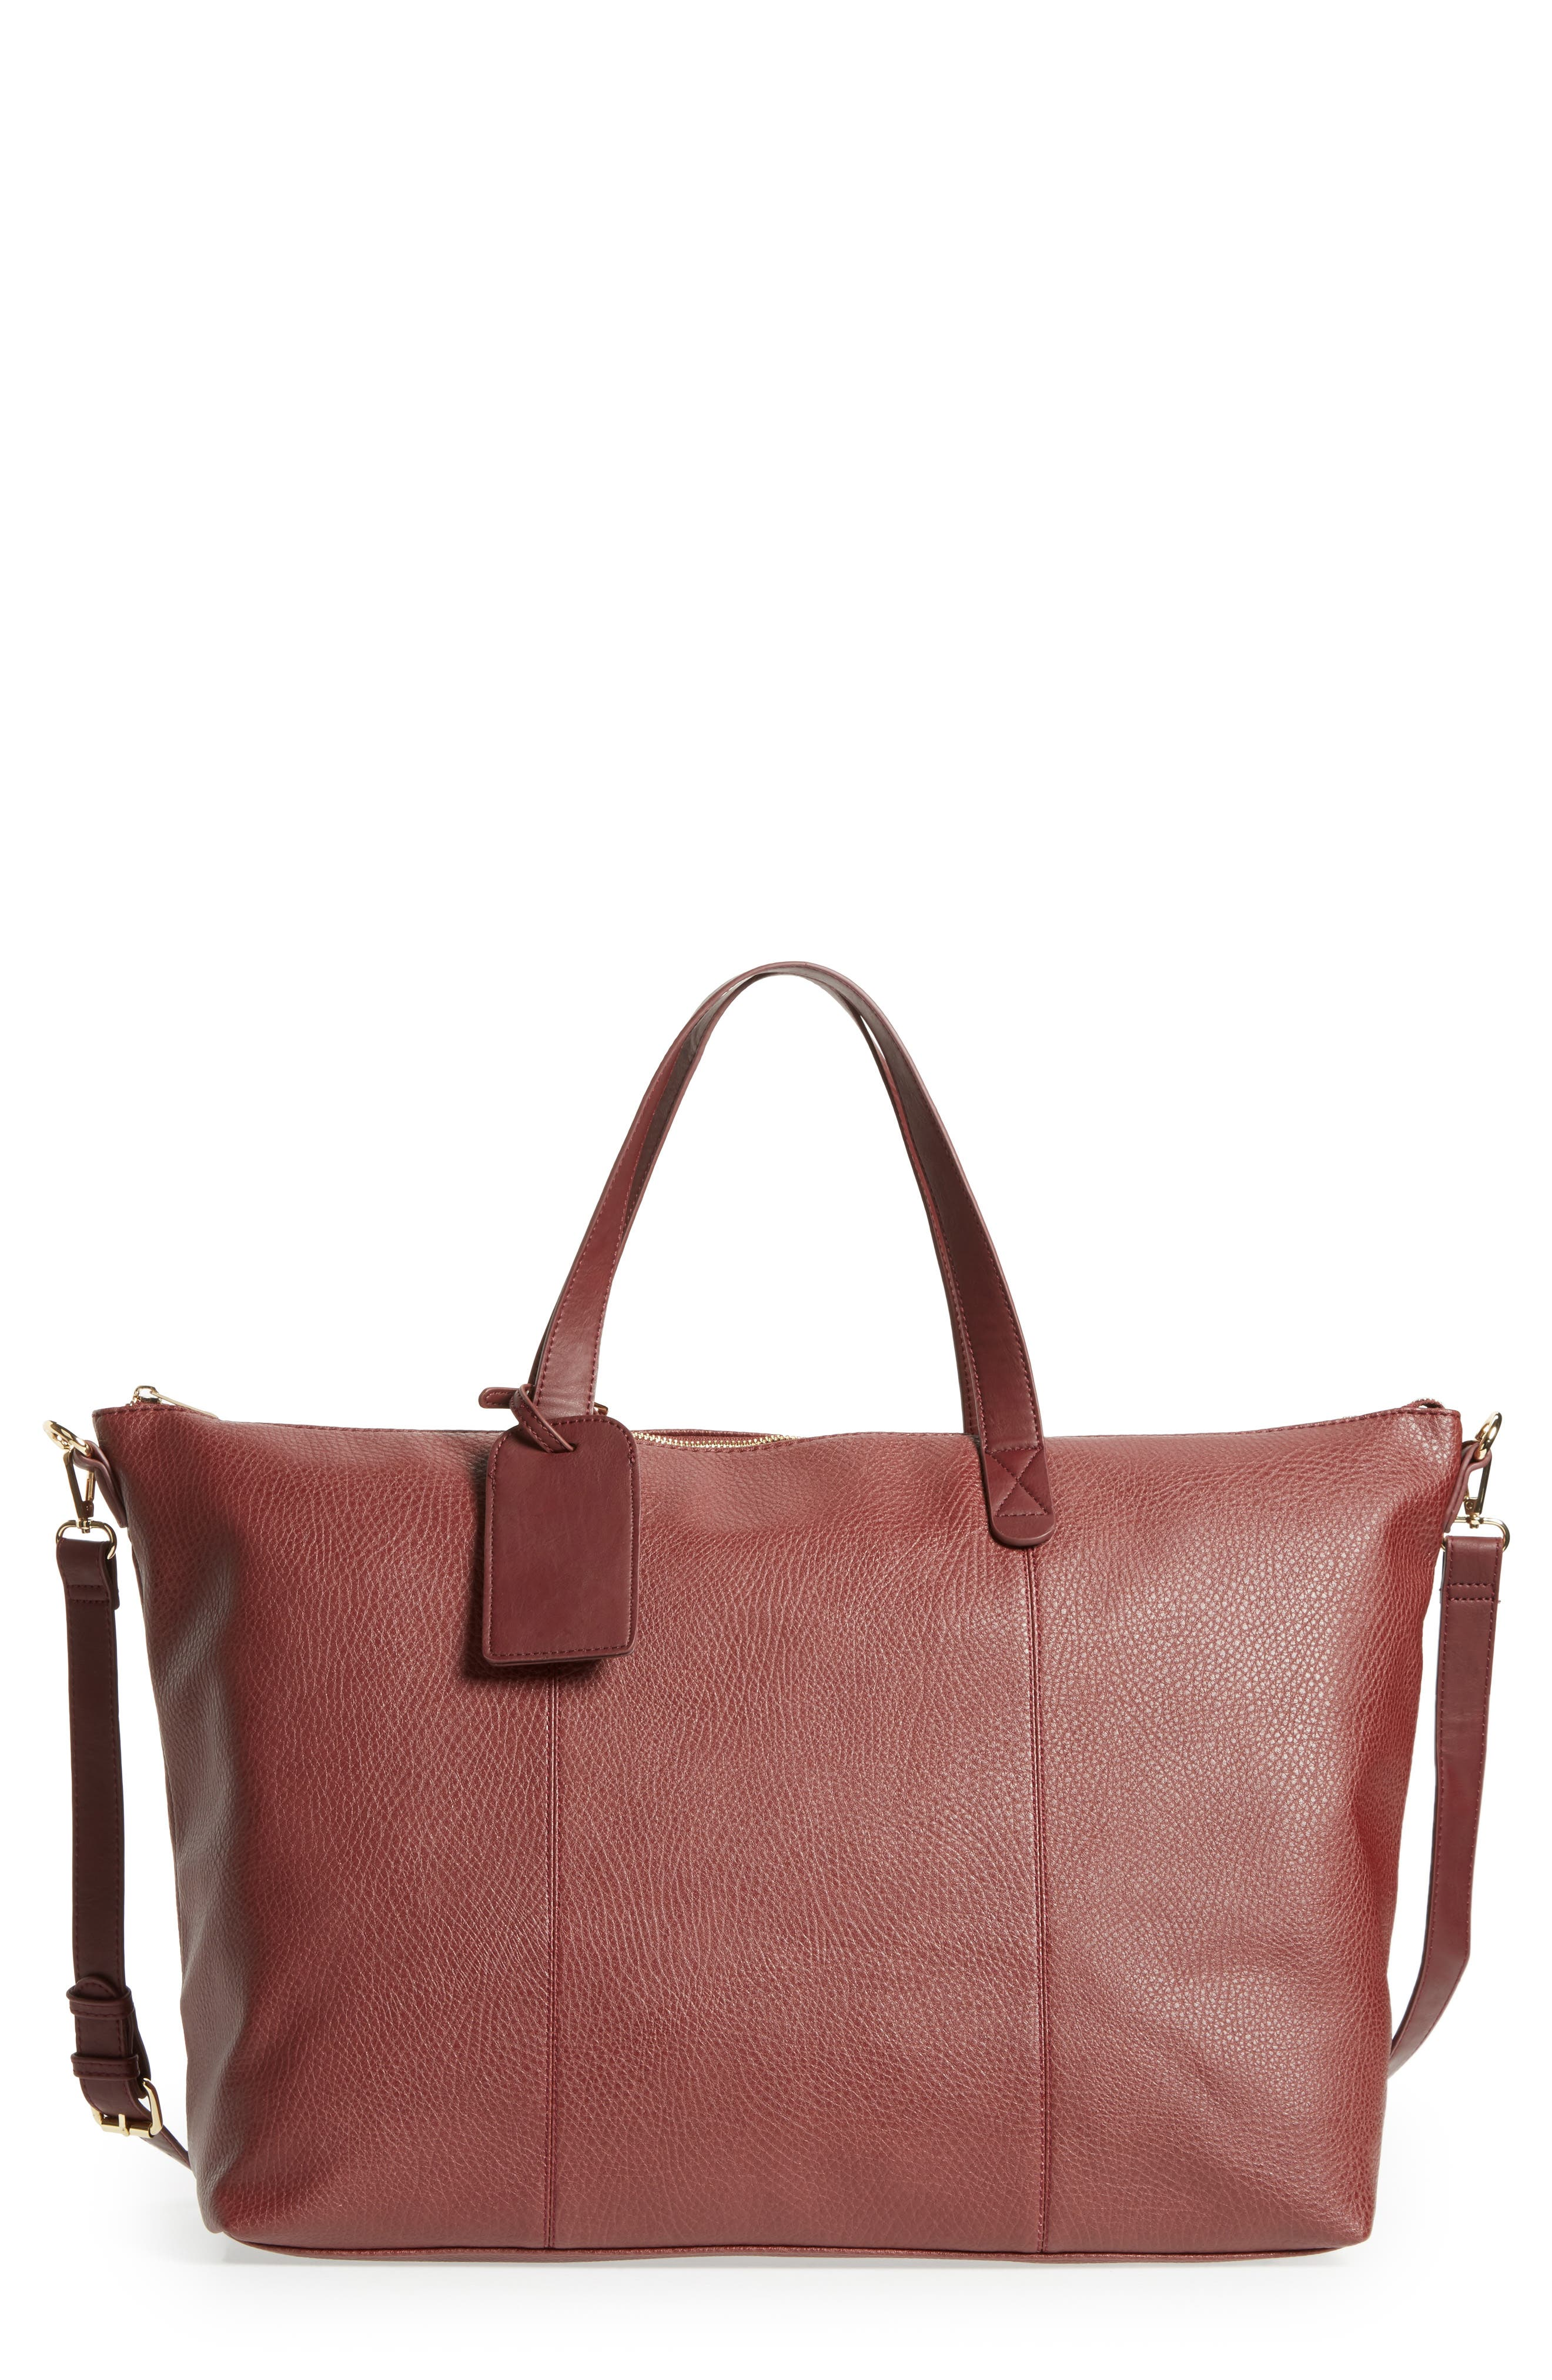 Candice Oversize Travel Tote,                             Main thumbnail 1, color,                             Oxblood